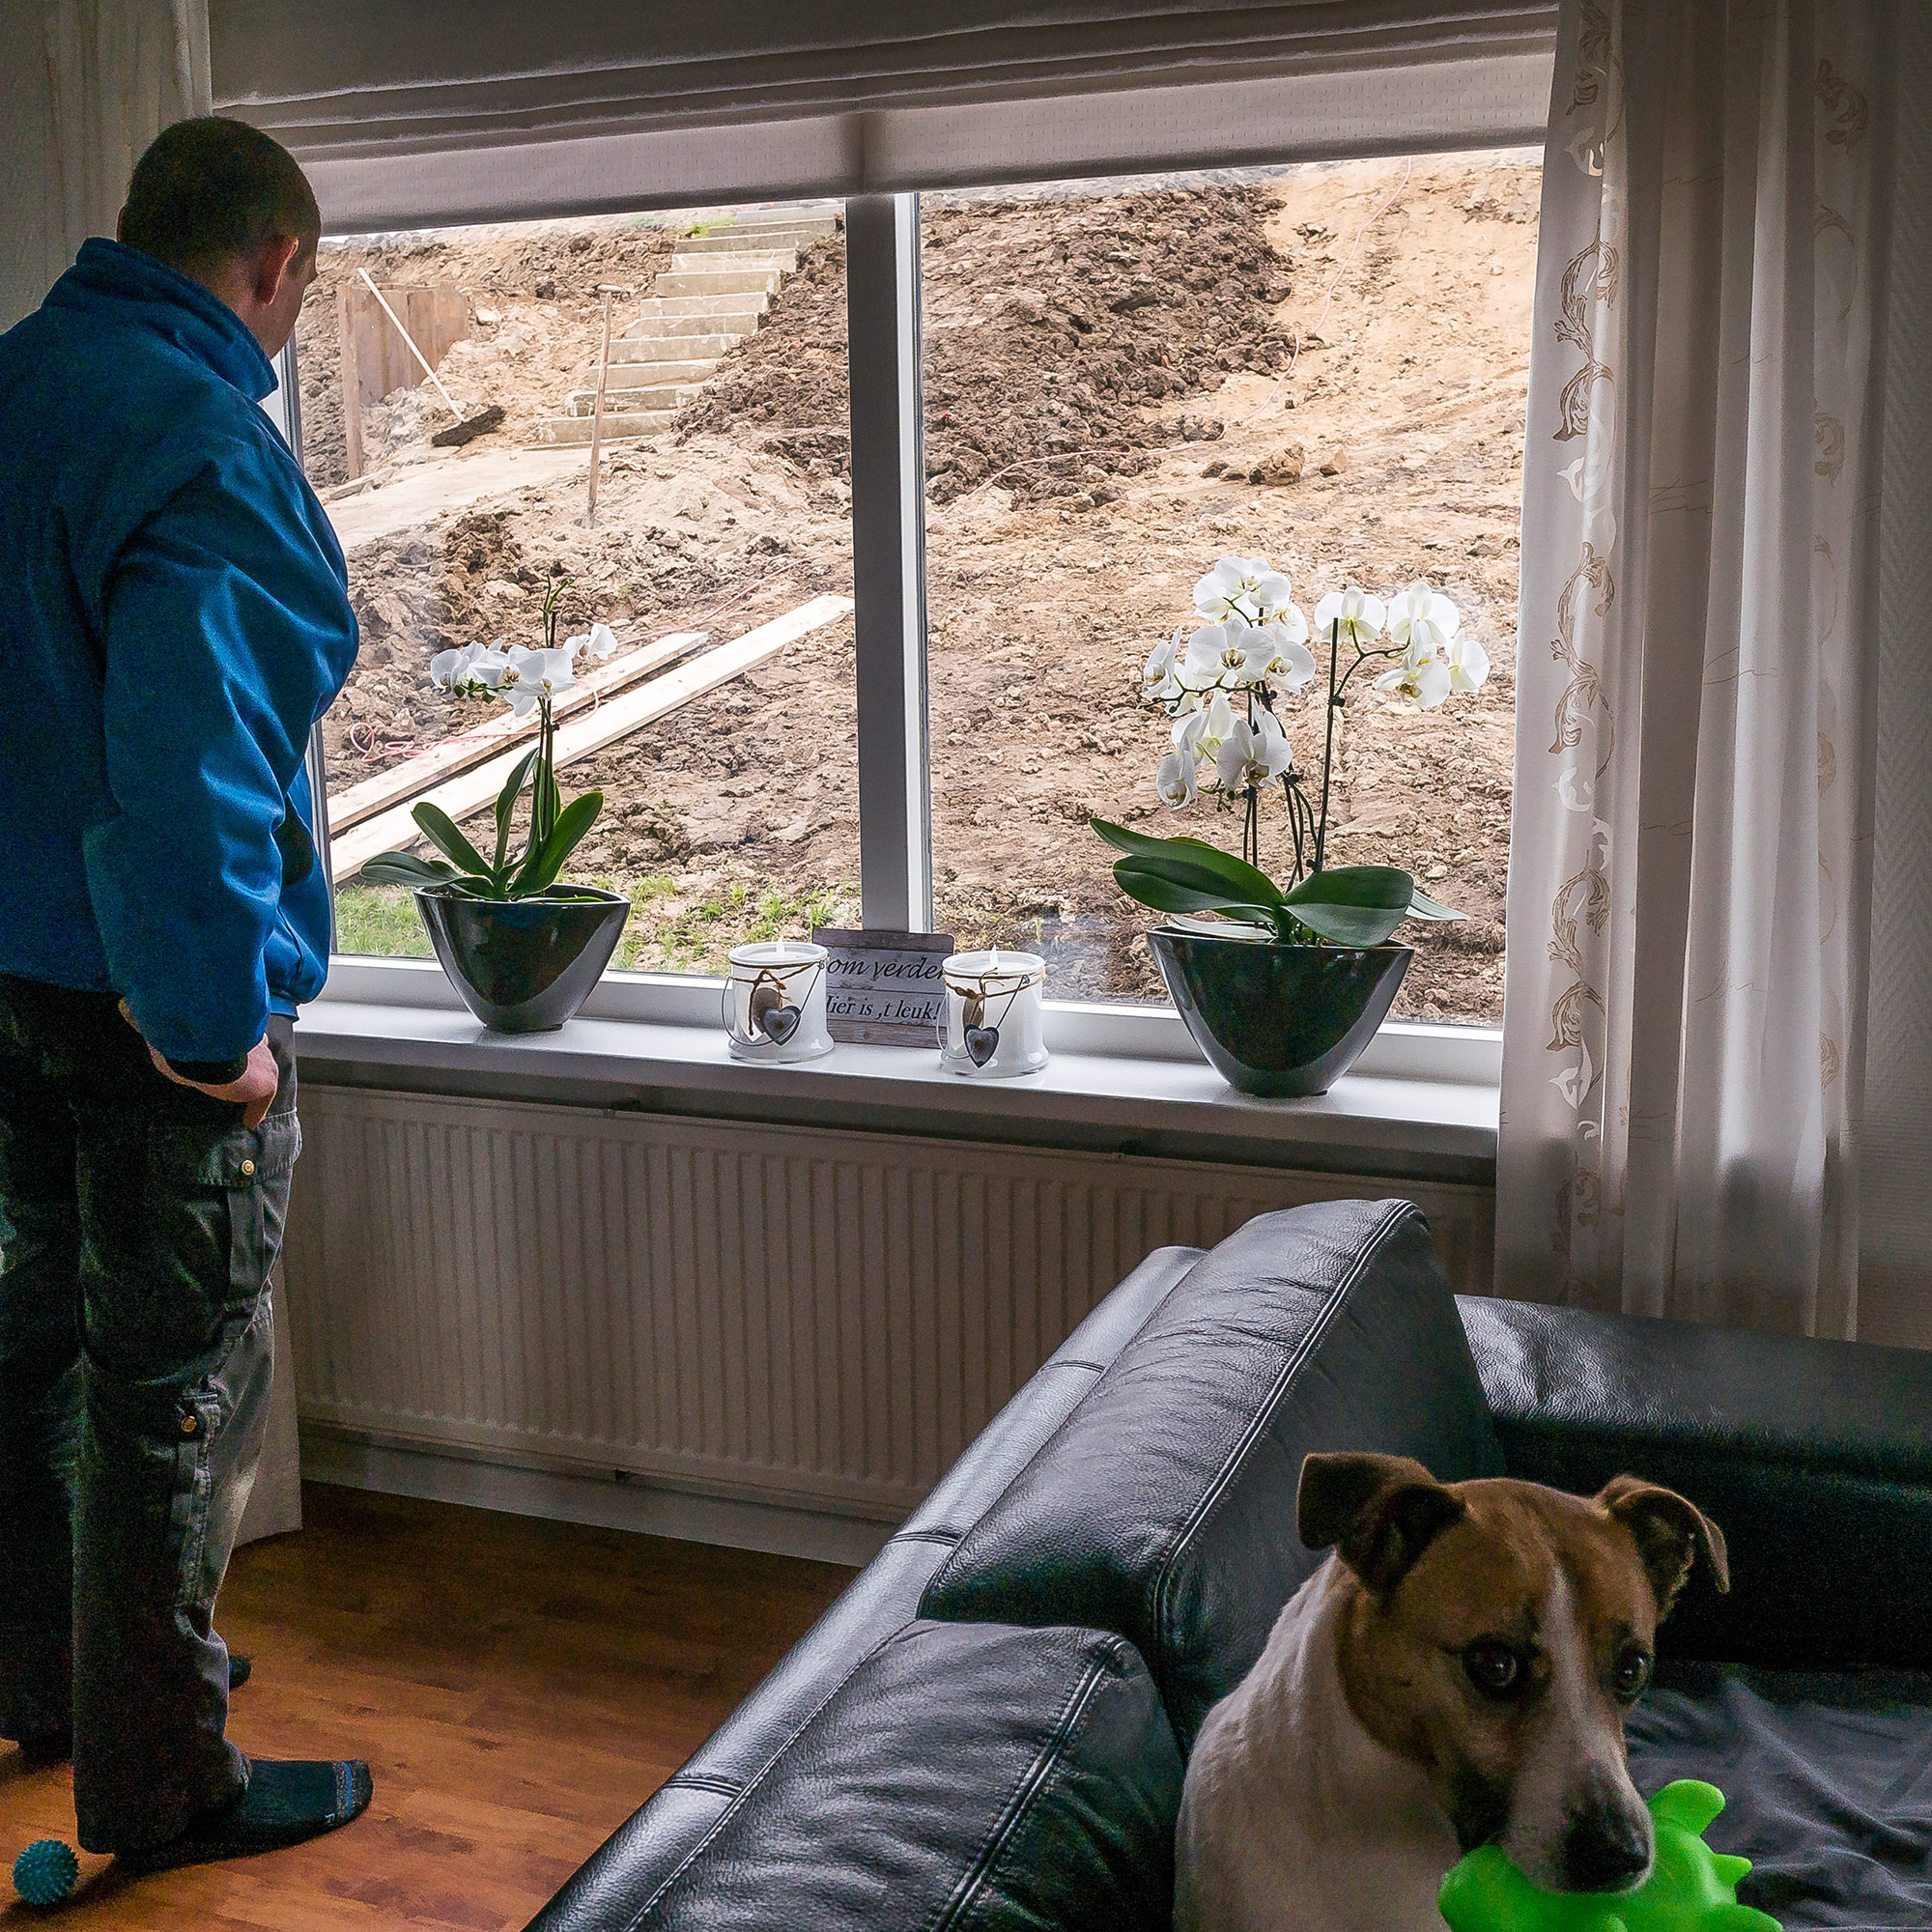 Police officer Ronald Hendriksa looks out at his front yard in Molenwaard, now a construction site for a national dike reinforcement project. The federal water authority first told him his house would be demolished, but negotiated to keep it. (Photo by Joris van Gennip/GroundTruth)